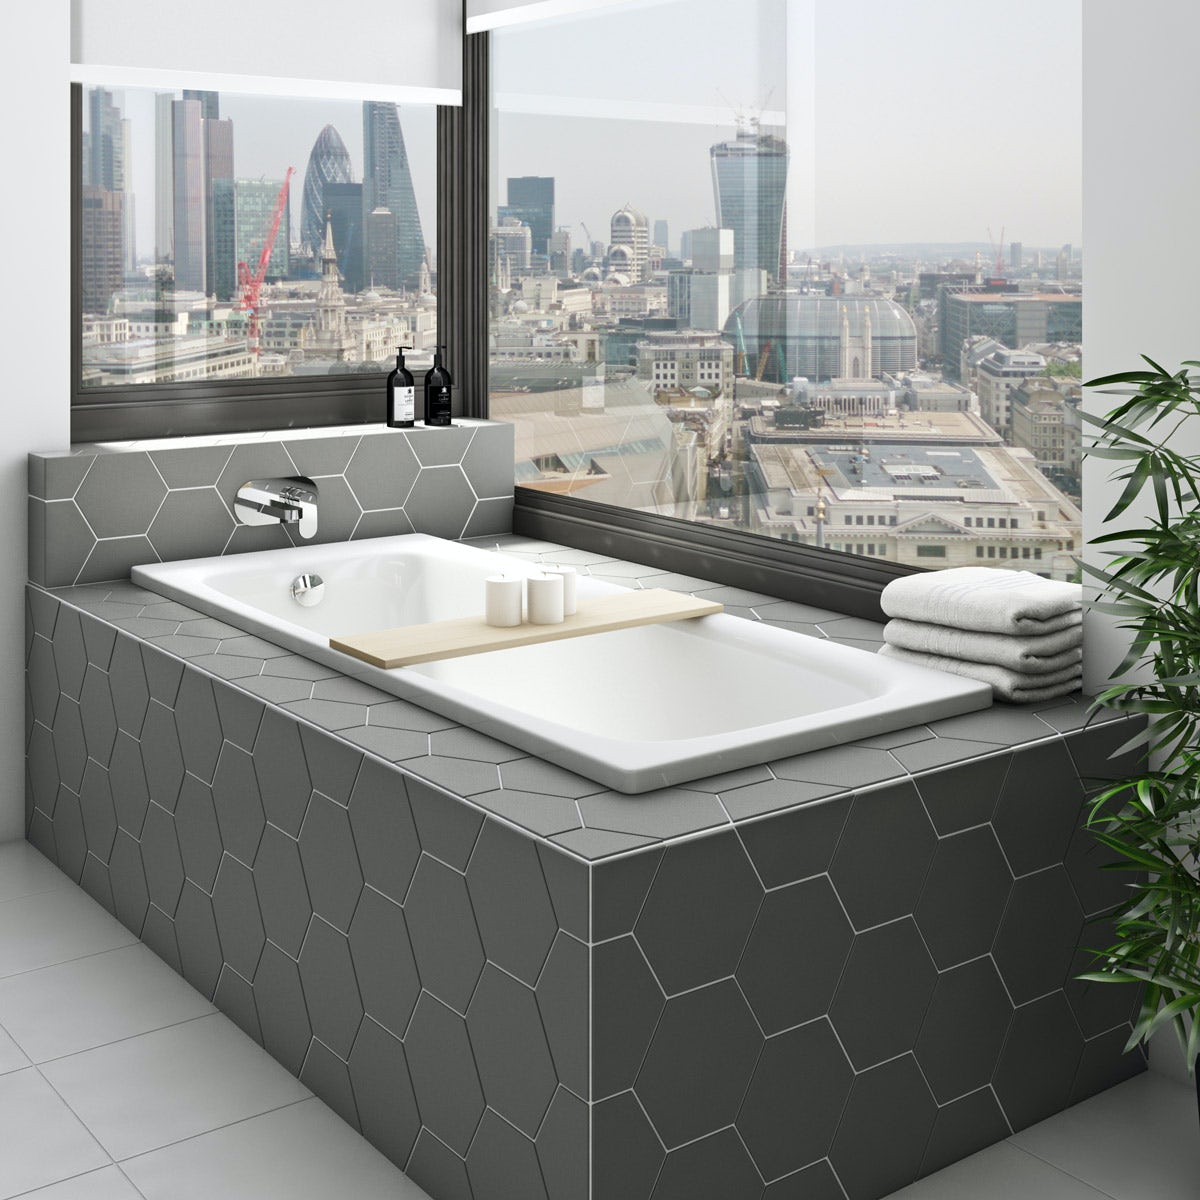 kaldewei puro straight steel bath with leg set 1700 x 700 with no tap holes. Black Bedroom Furniture Sets. Home Design Ideas